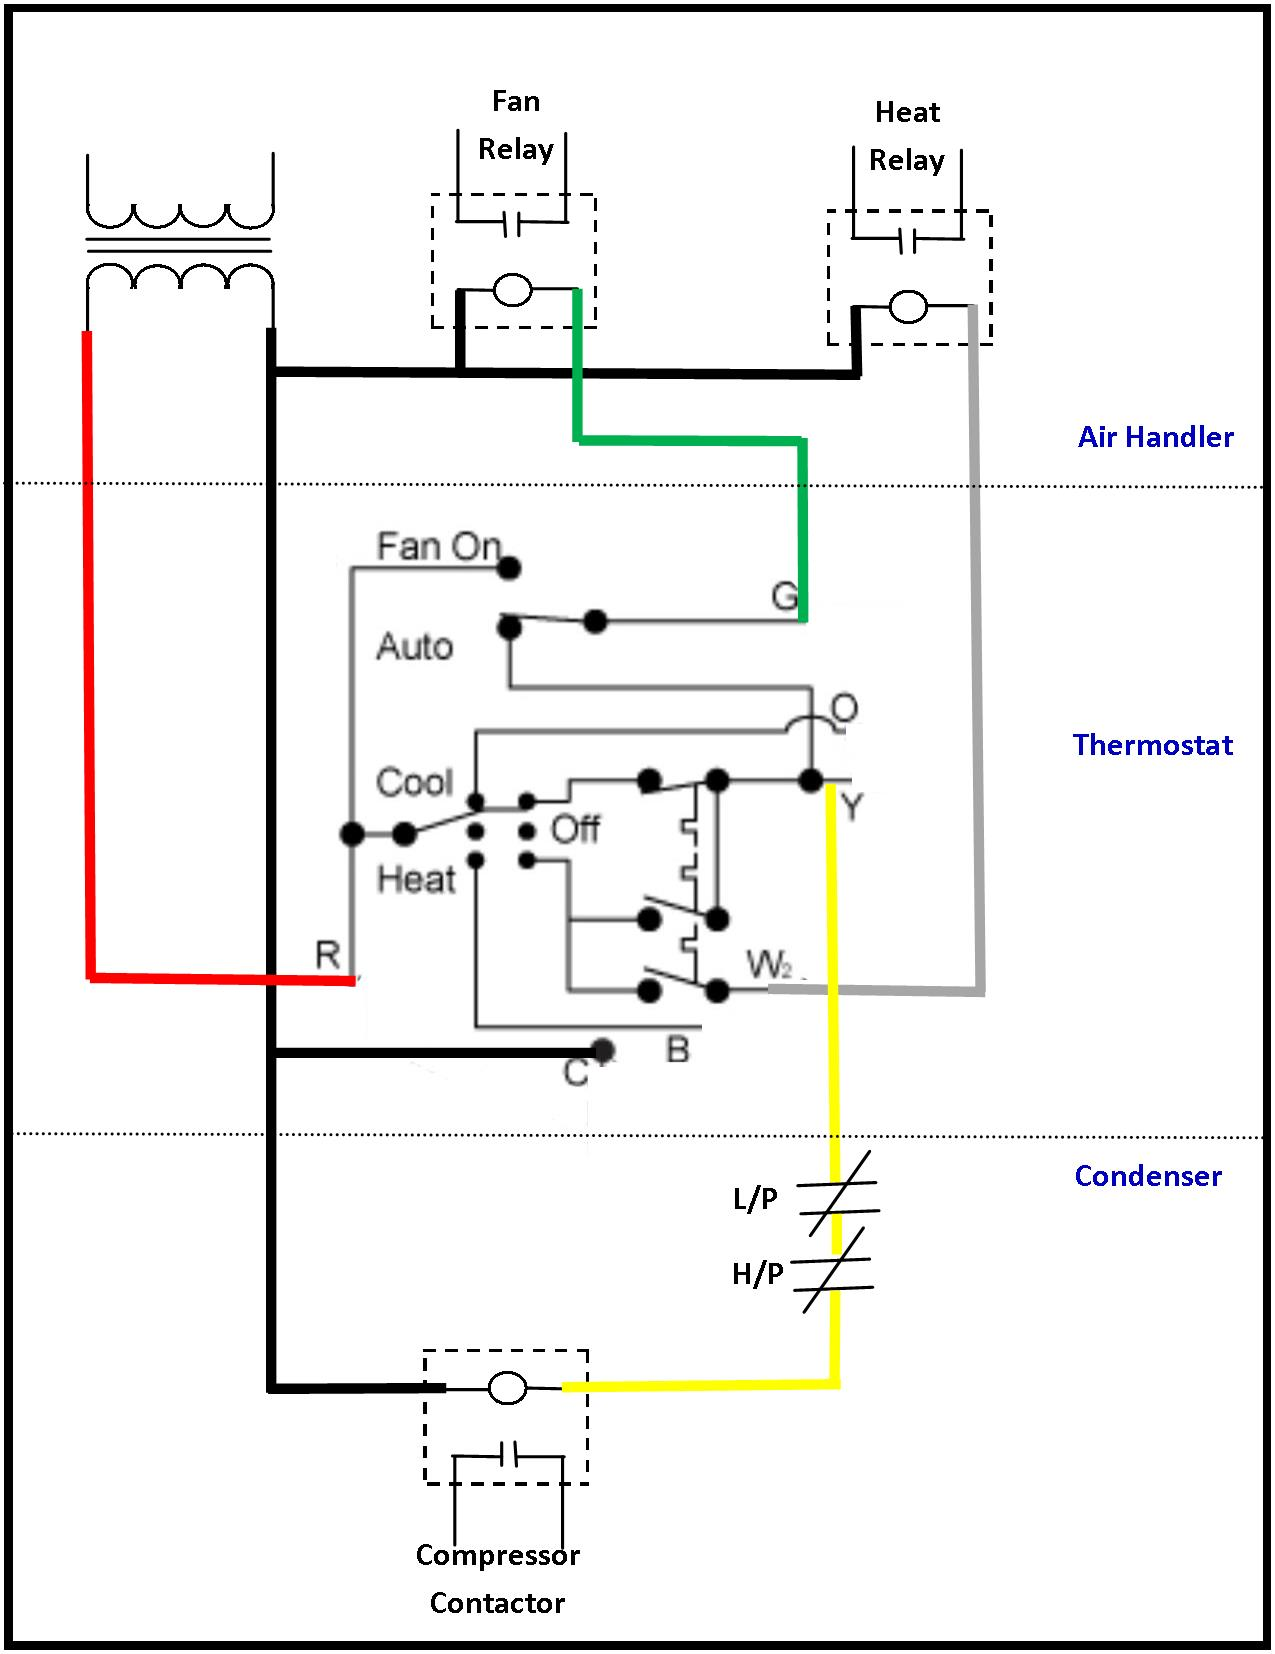 AC low voltage wiring diagram1 wiring an ac central ac wiring diagram \u2022 free wiring diagrams ac thermostat wiring diagram at reclaimingppi.co